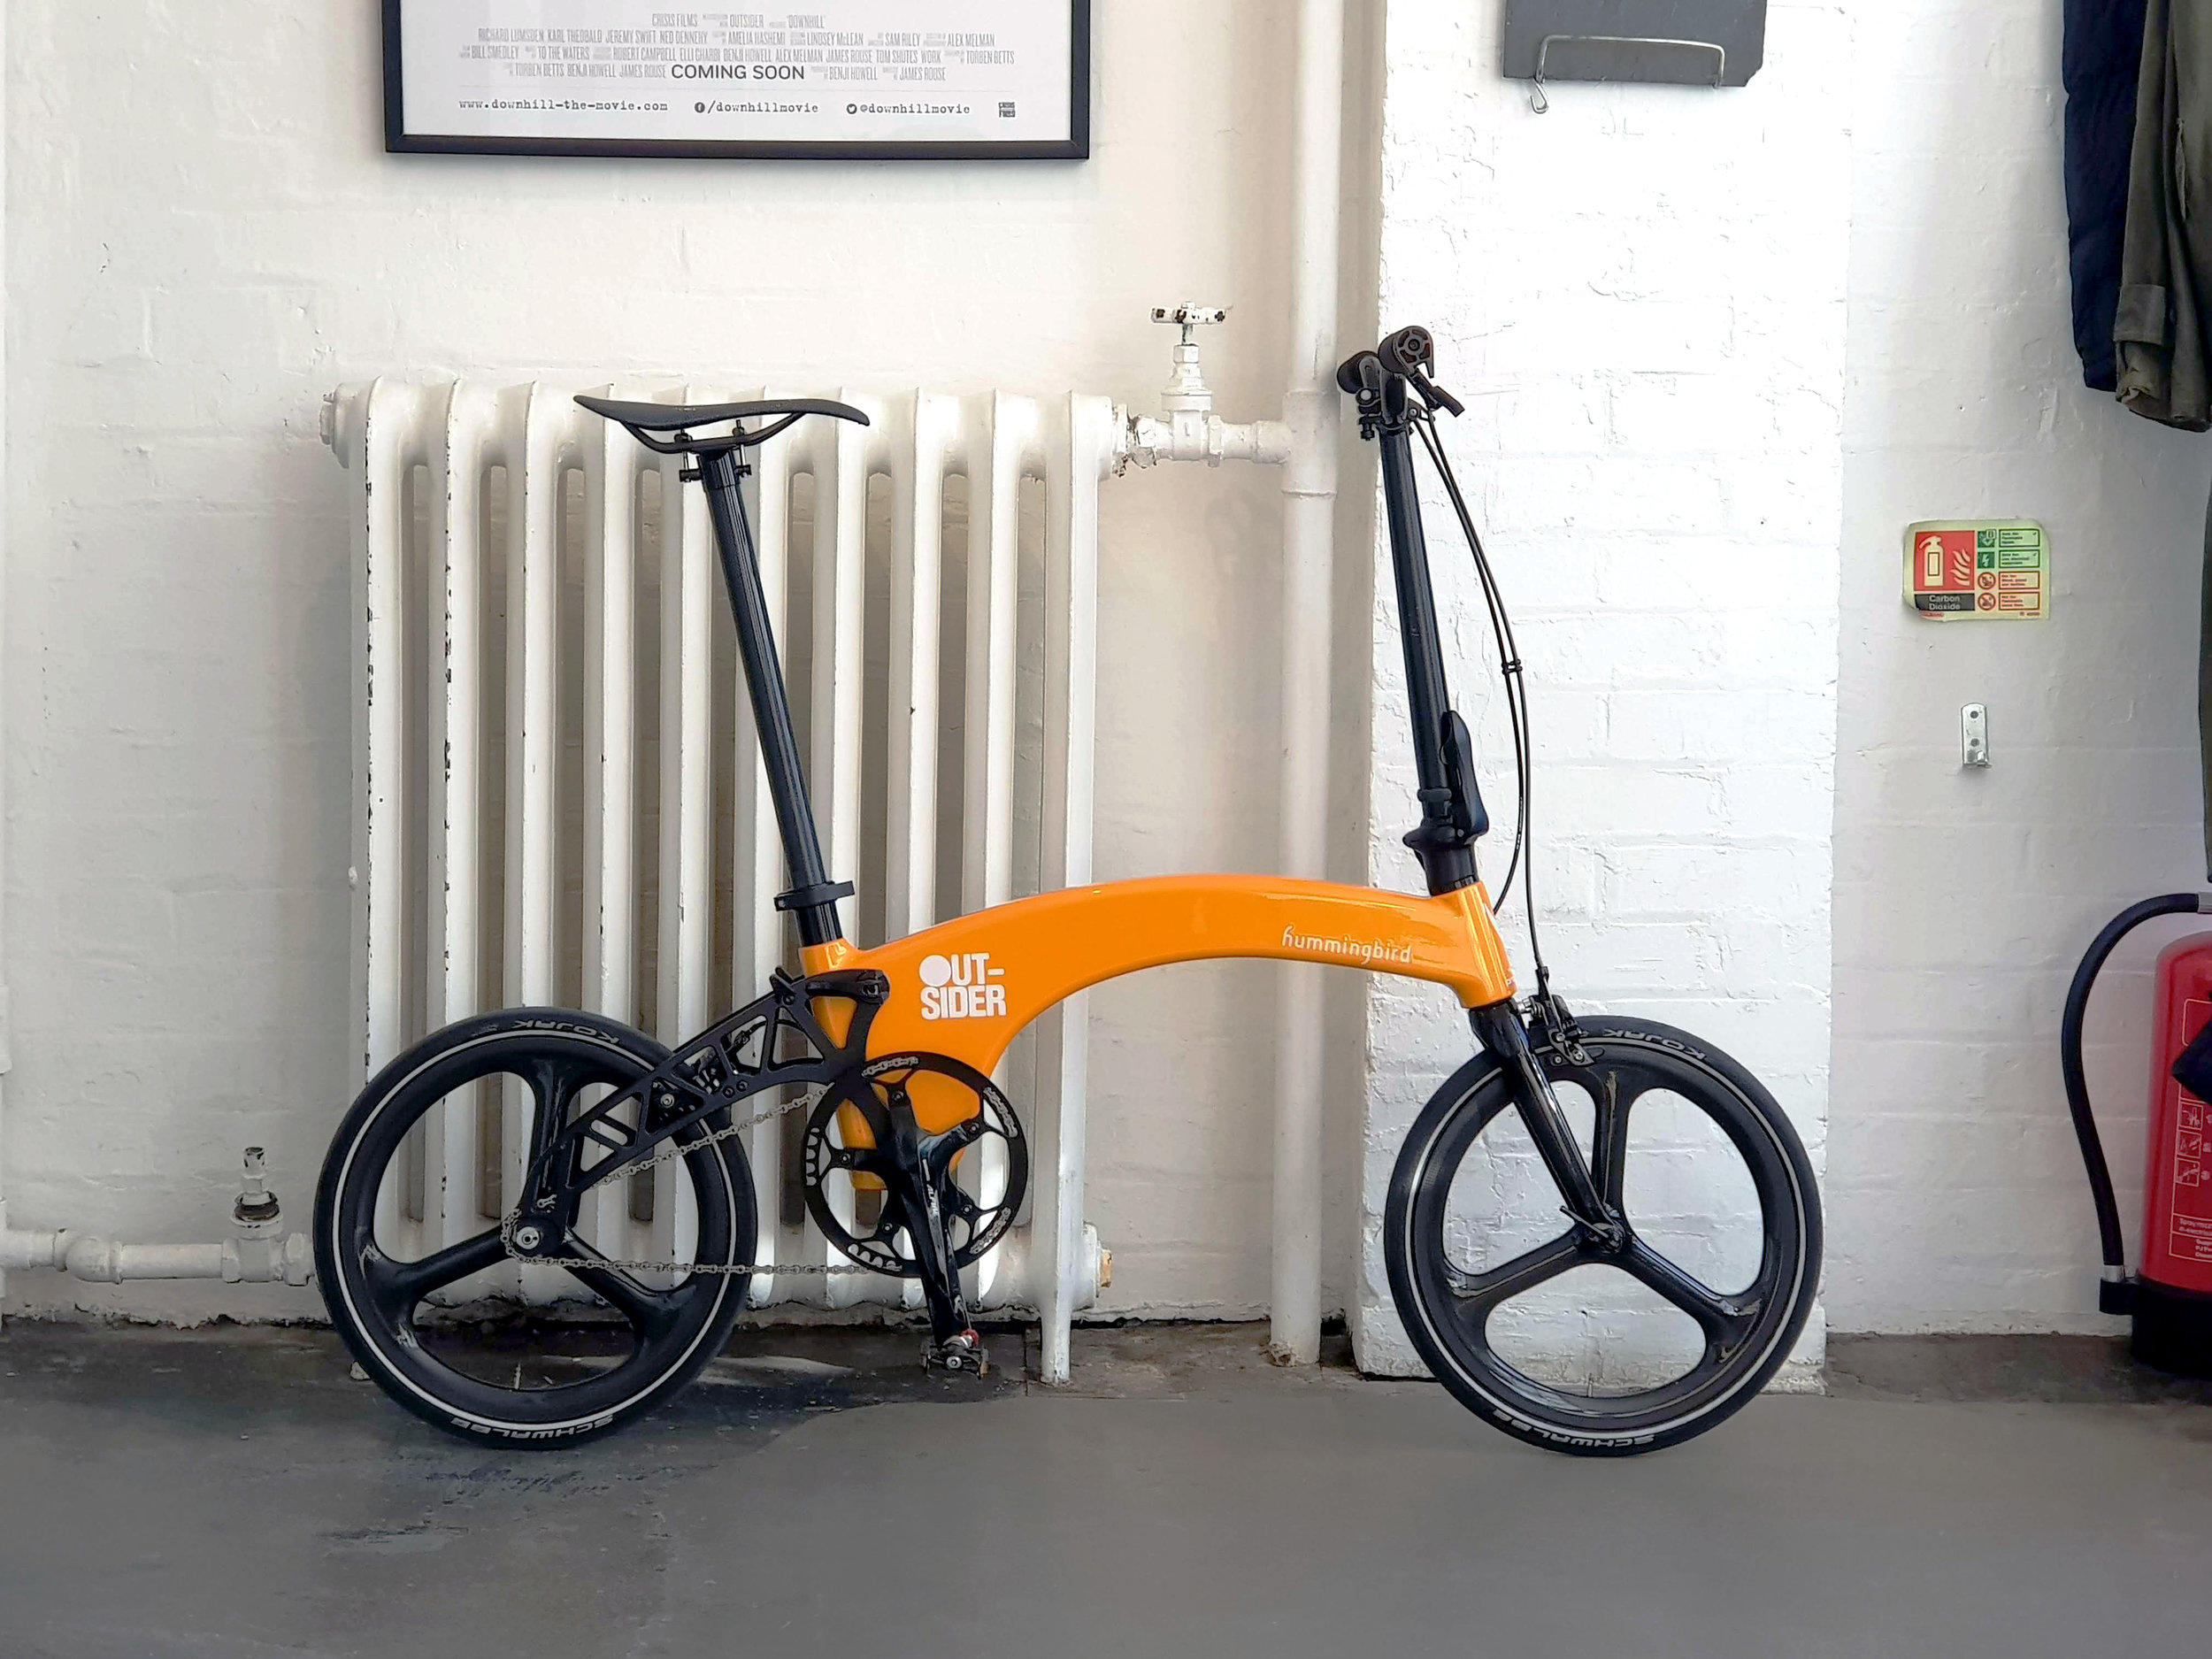 The Outsider bike gets an upgrade